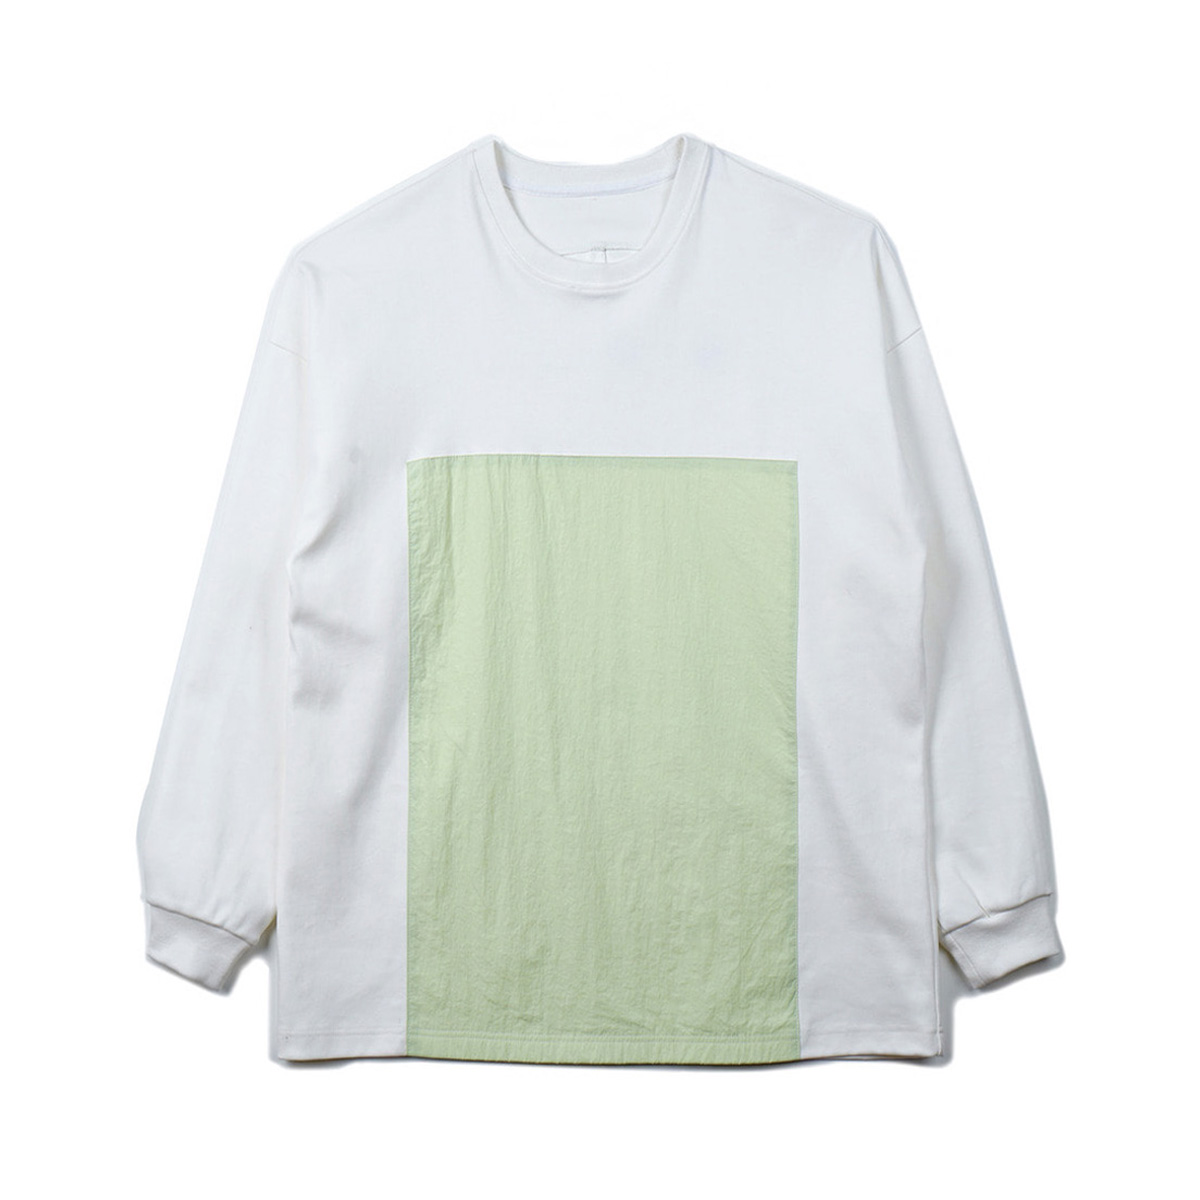 [OOPARTS] LUIS T-SHIRT 'WHITE'